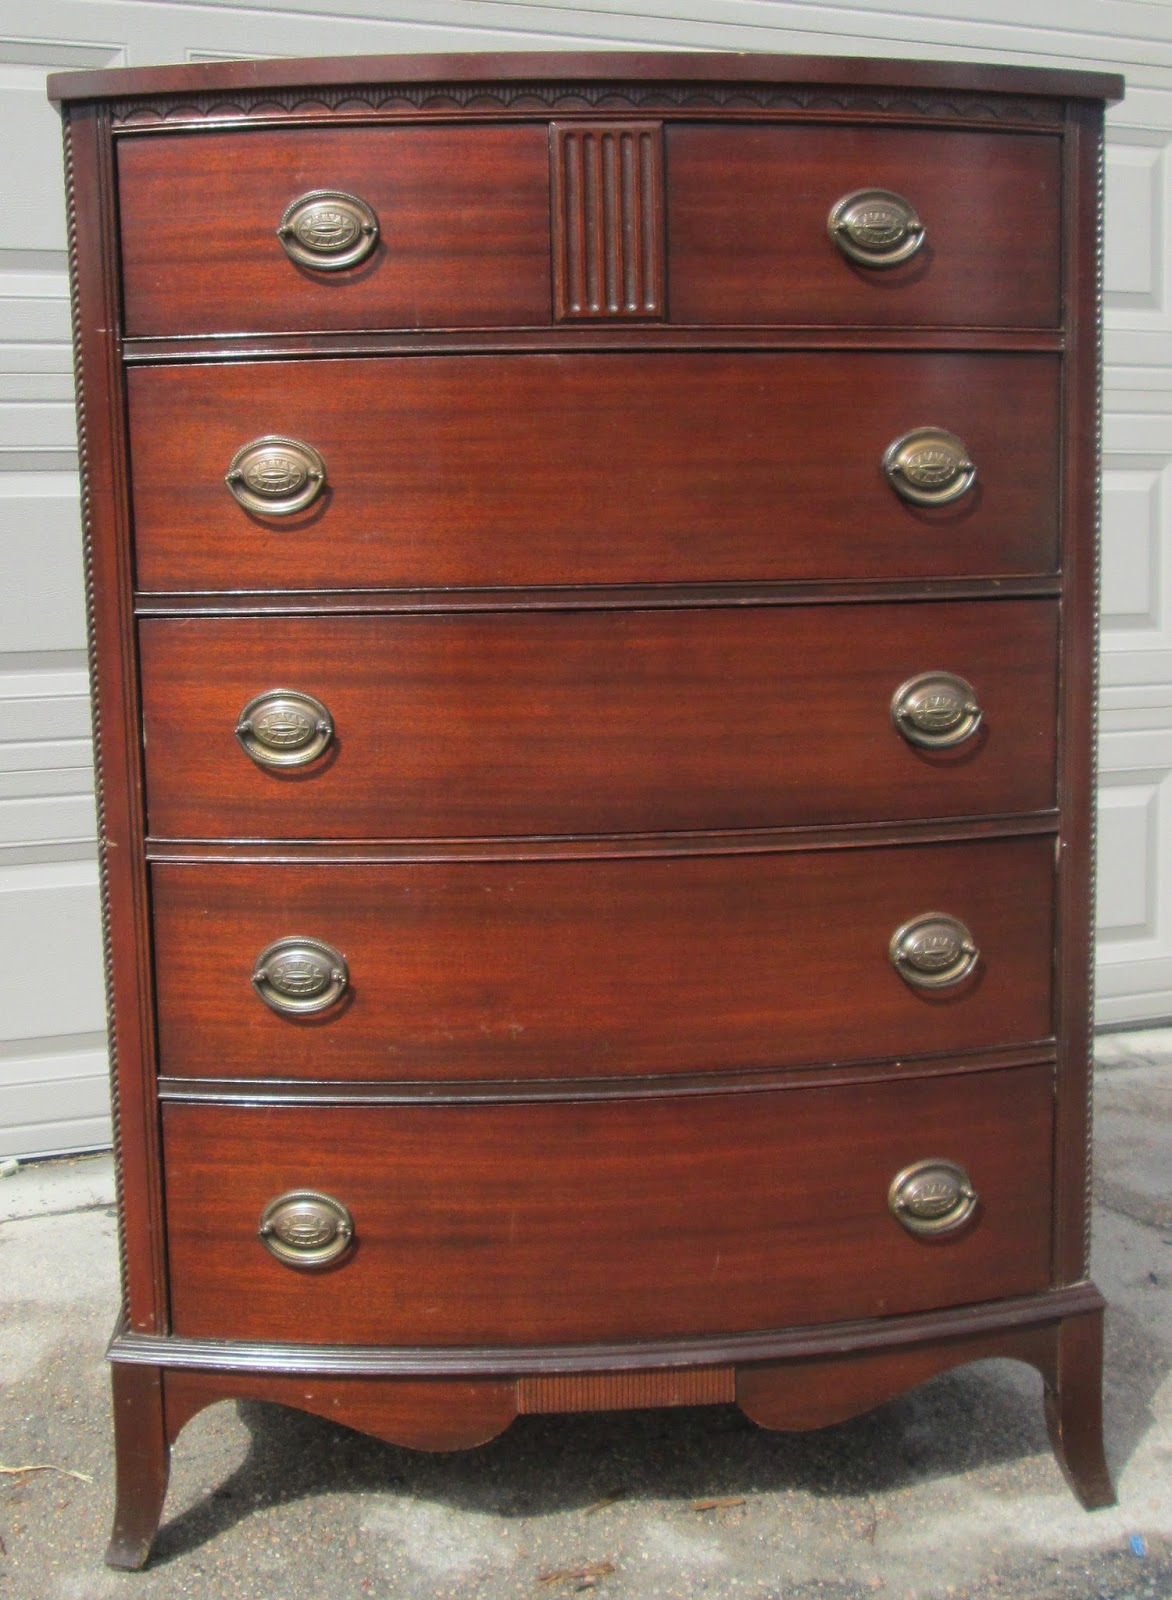 2657 Classi D1 81 Windsor Chair Plans additionally 1400455 besides Antique Mahogany Dresser Chest together with Restored Furniture For Sale Horsham Artinupholstery 10 1000 together with Restored Furniture For Sale Hepplewhite Dining Chairs Horsham West Sussex Rh Artinupholstery 01. on hepplewhite dining chairs